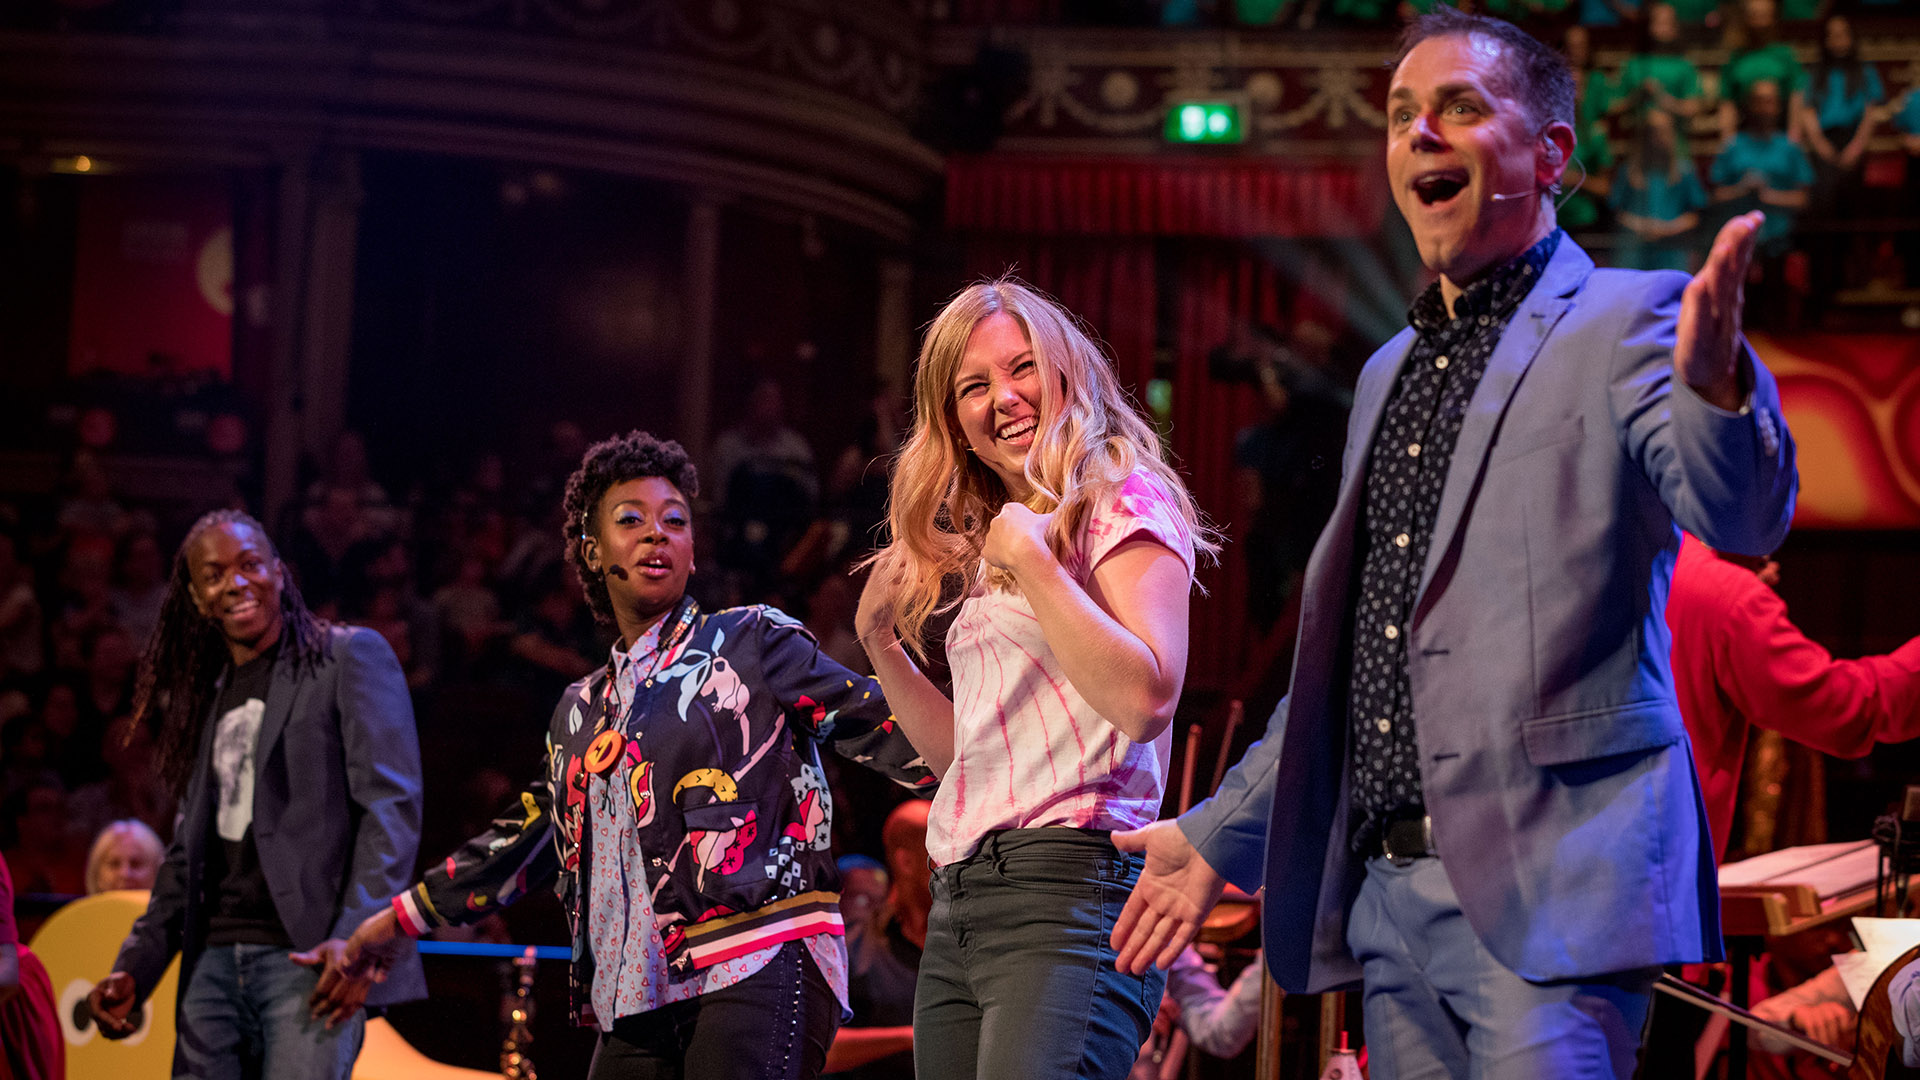 CBeebies Presenters on stage at the the Cbeebies Prom 2019 Photos 2 - Nigel Clarke, YolanDa Brown, Maddie Moate, Chris Jarvis